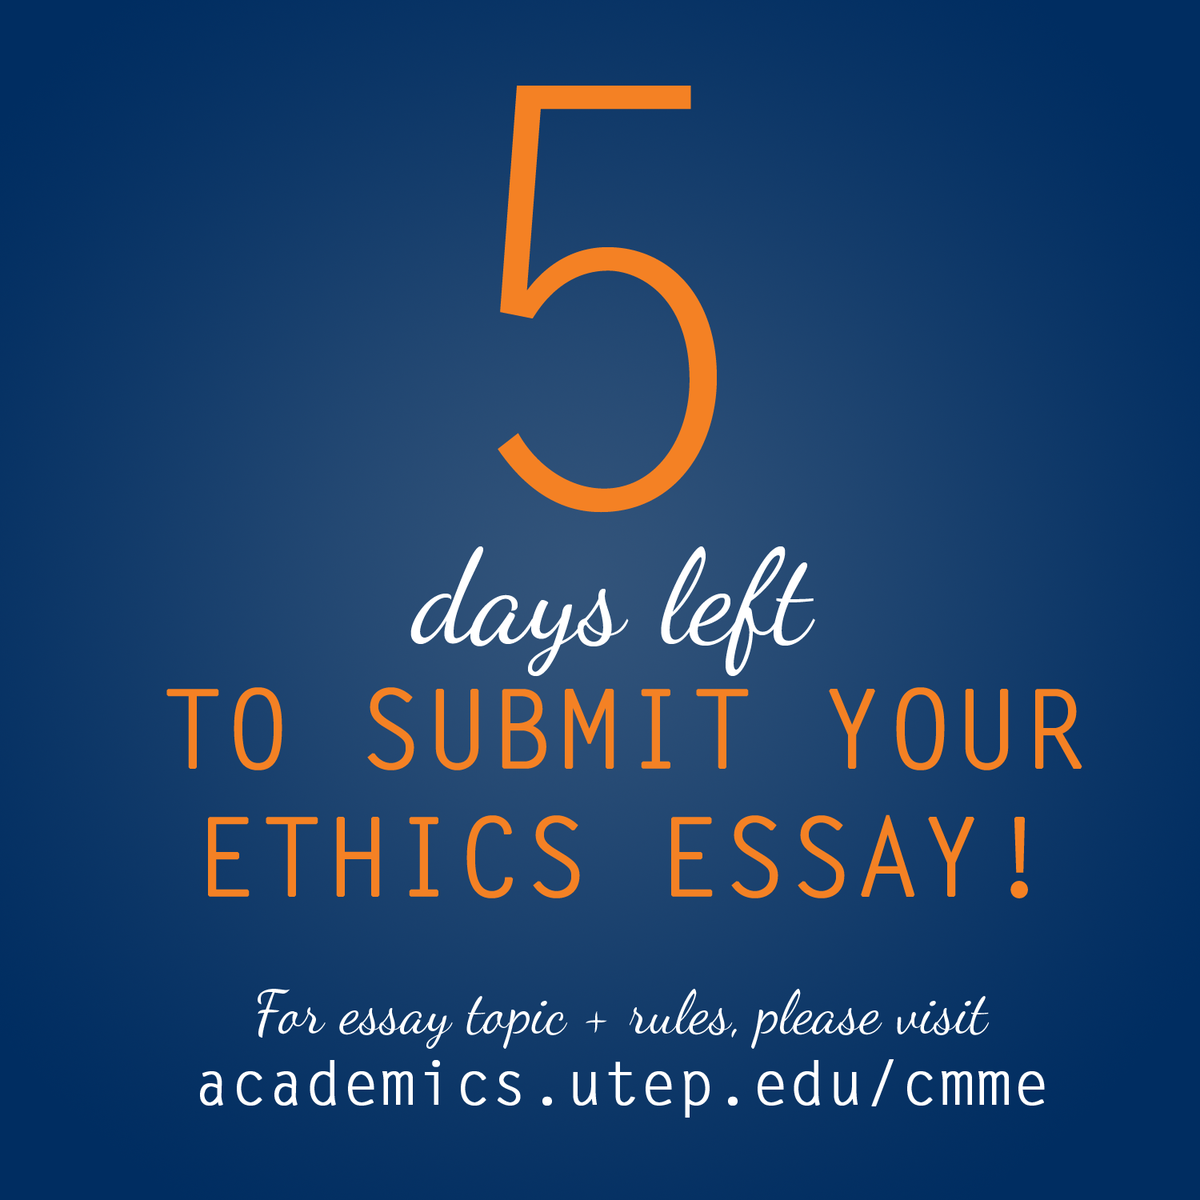 media ethics essay Free ethics papers, essays virtue ethics and care ethics - introduction this essay will provide a theoretical the media influences public opinion and.